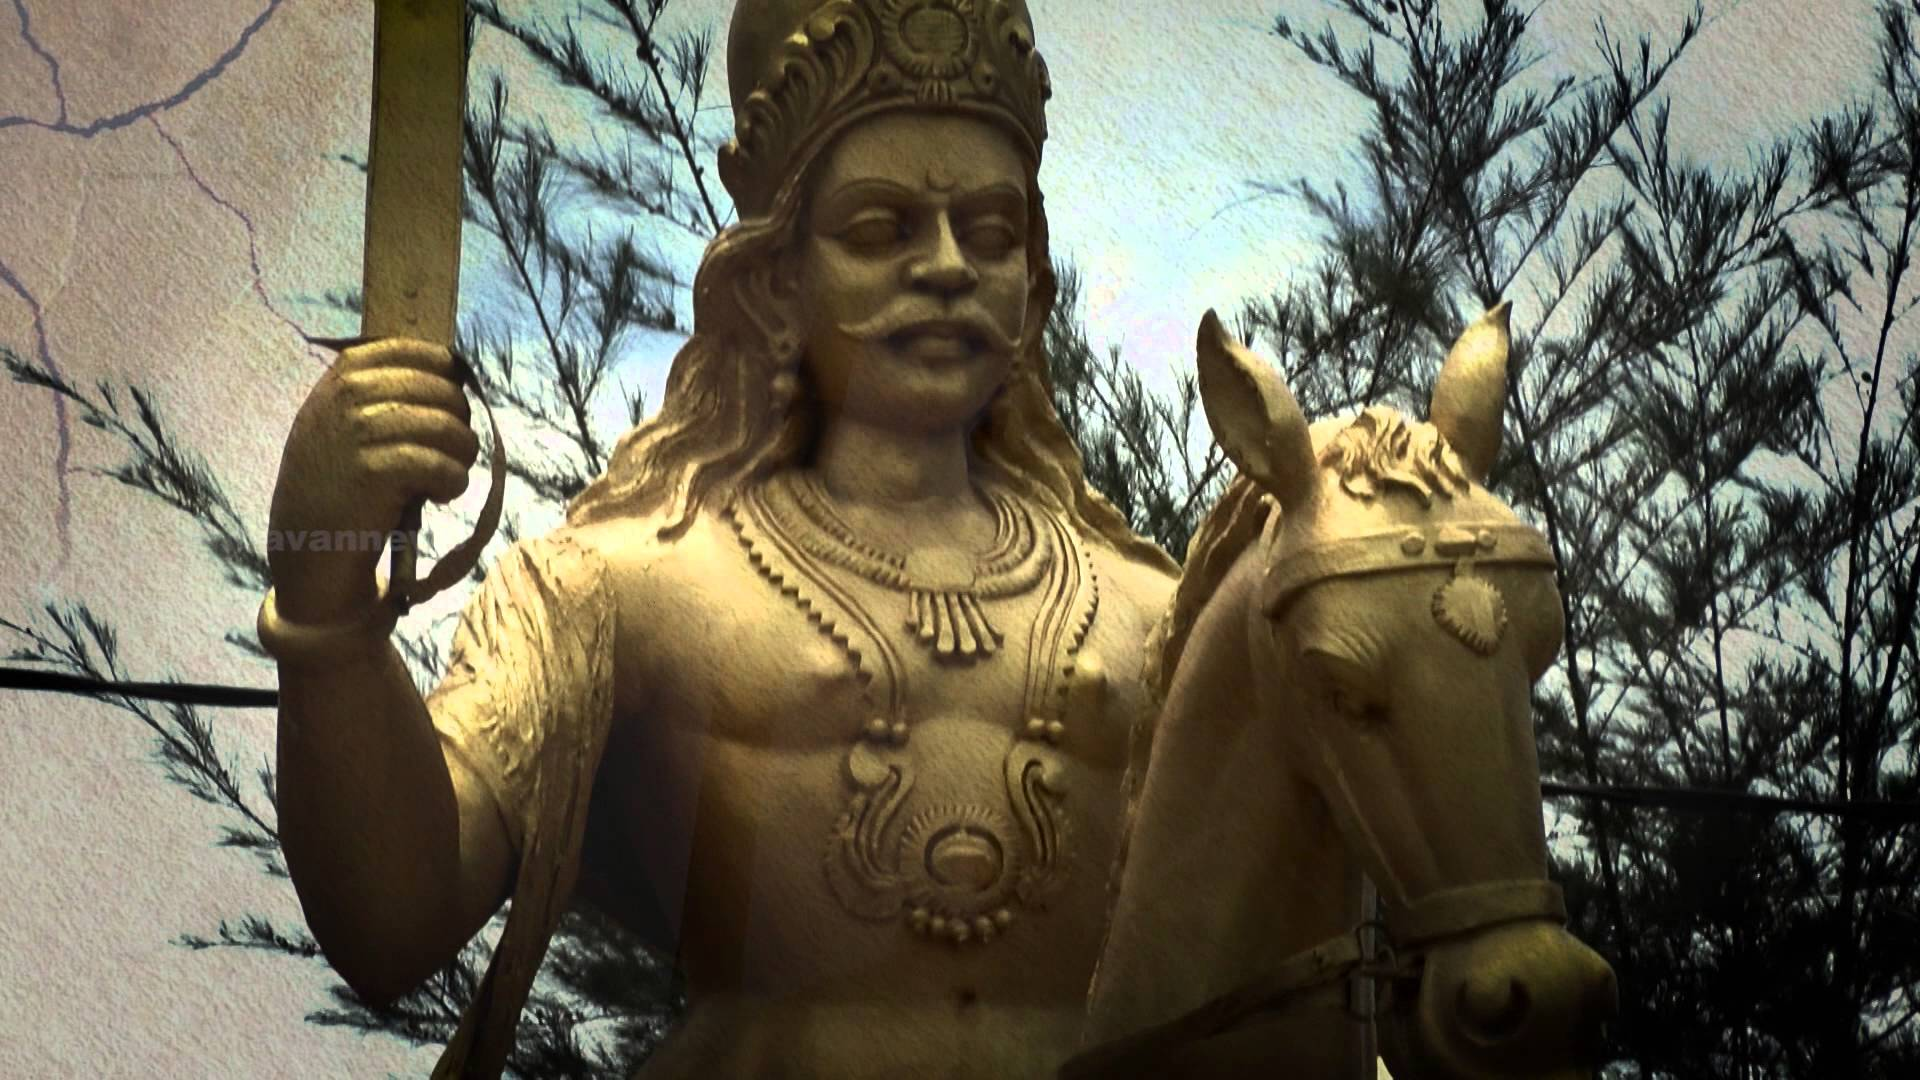 Cankili Thoppu Archway Jaffna, Jaffna Nallur kingdom Documentary - promo 2 - YouTube